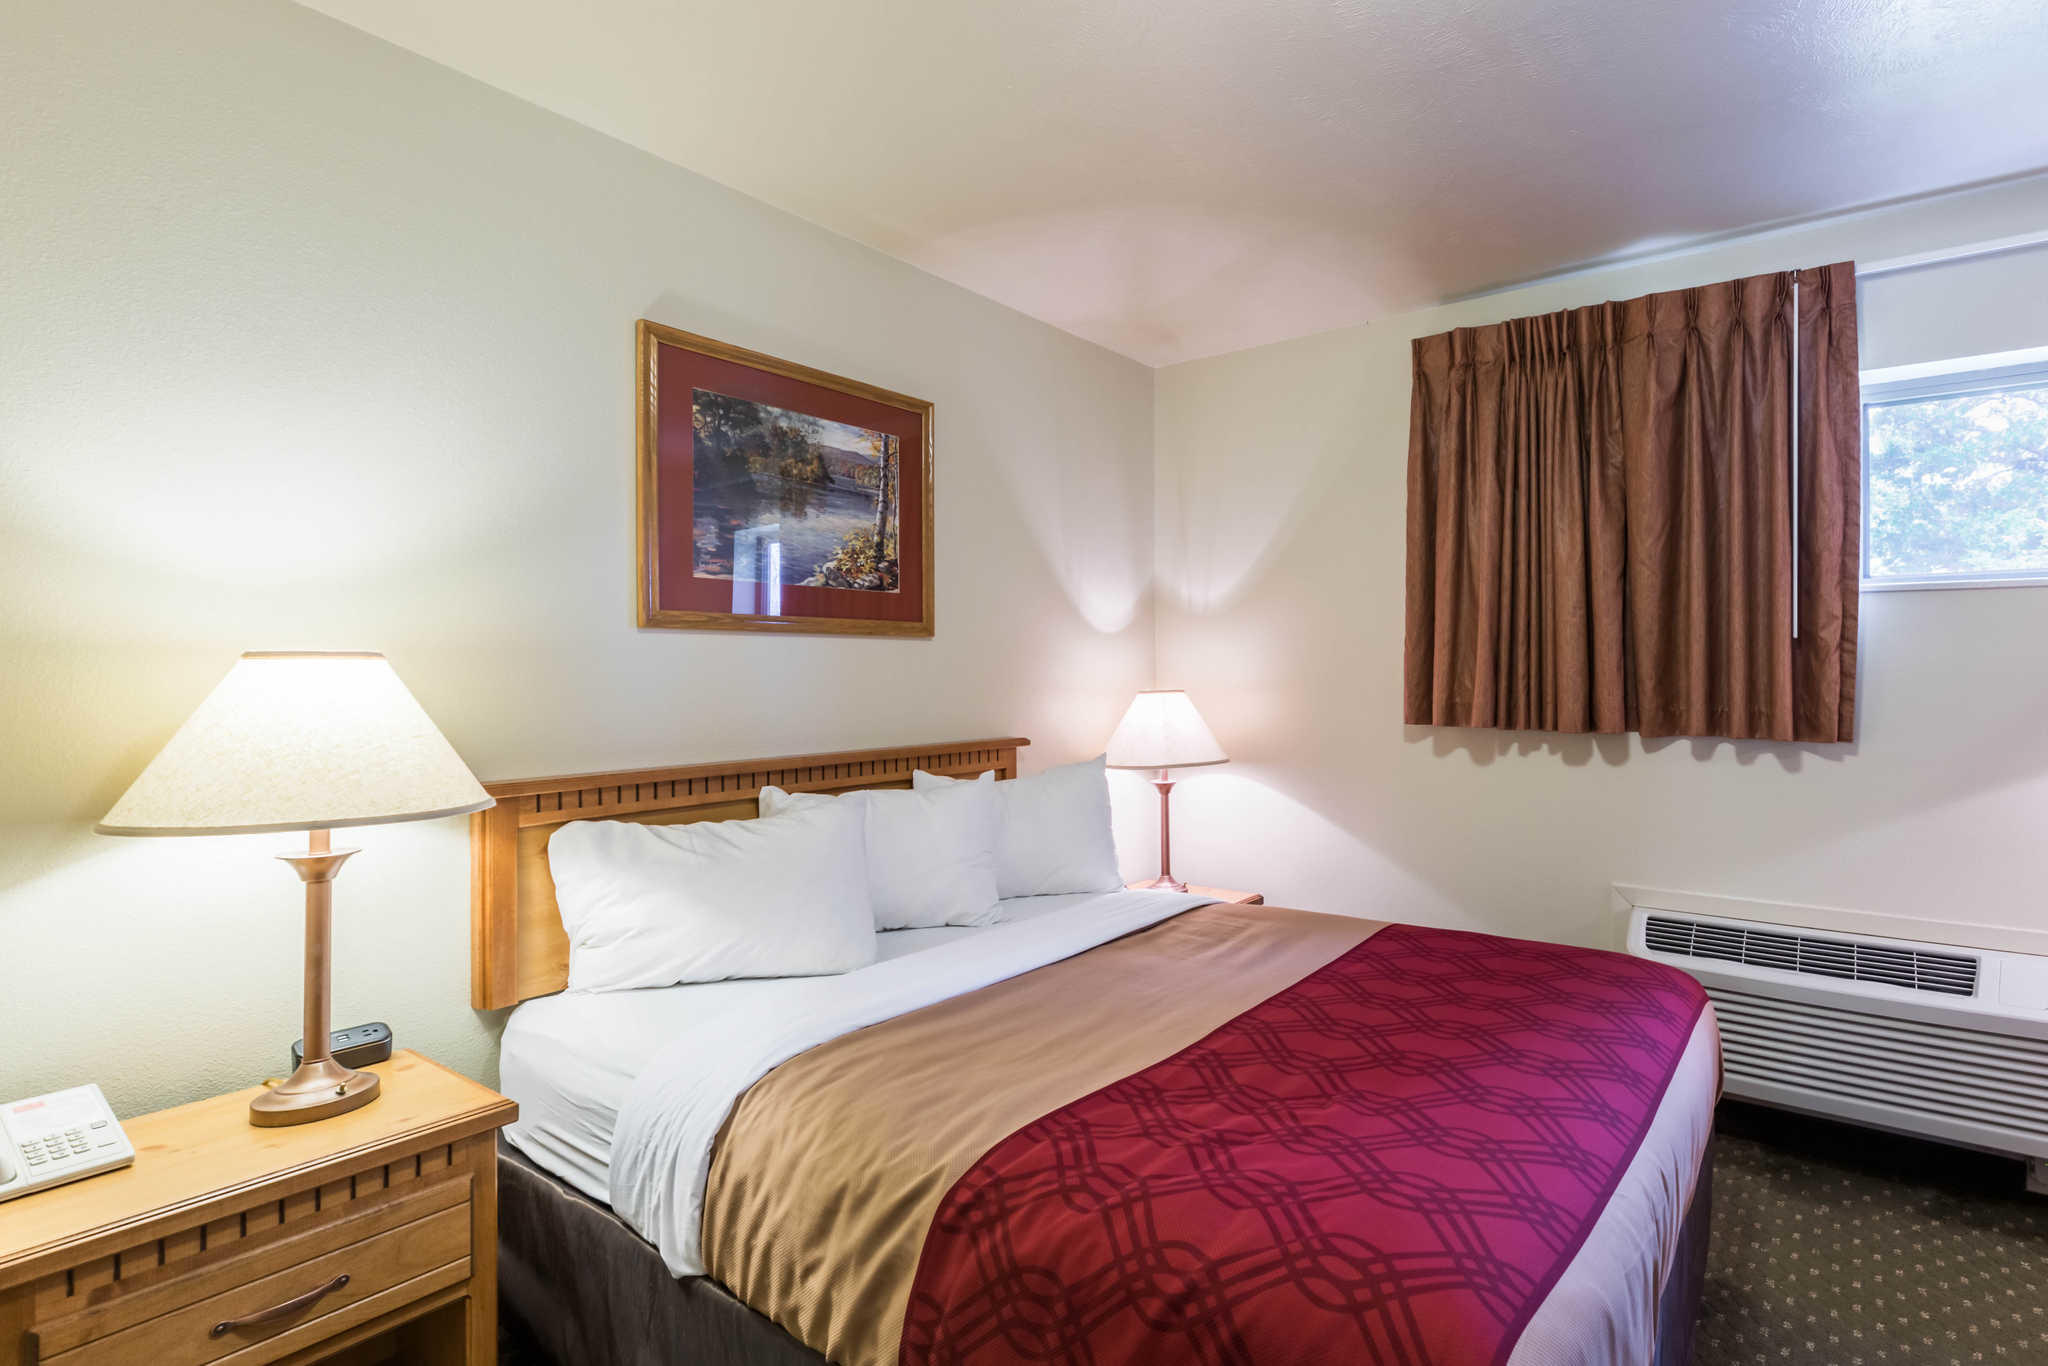 Econo Lodge Inn Amp Suites Valentine Nebraska NE